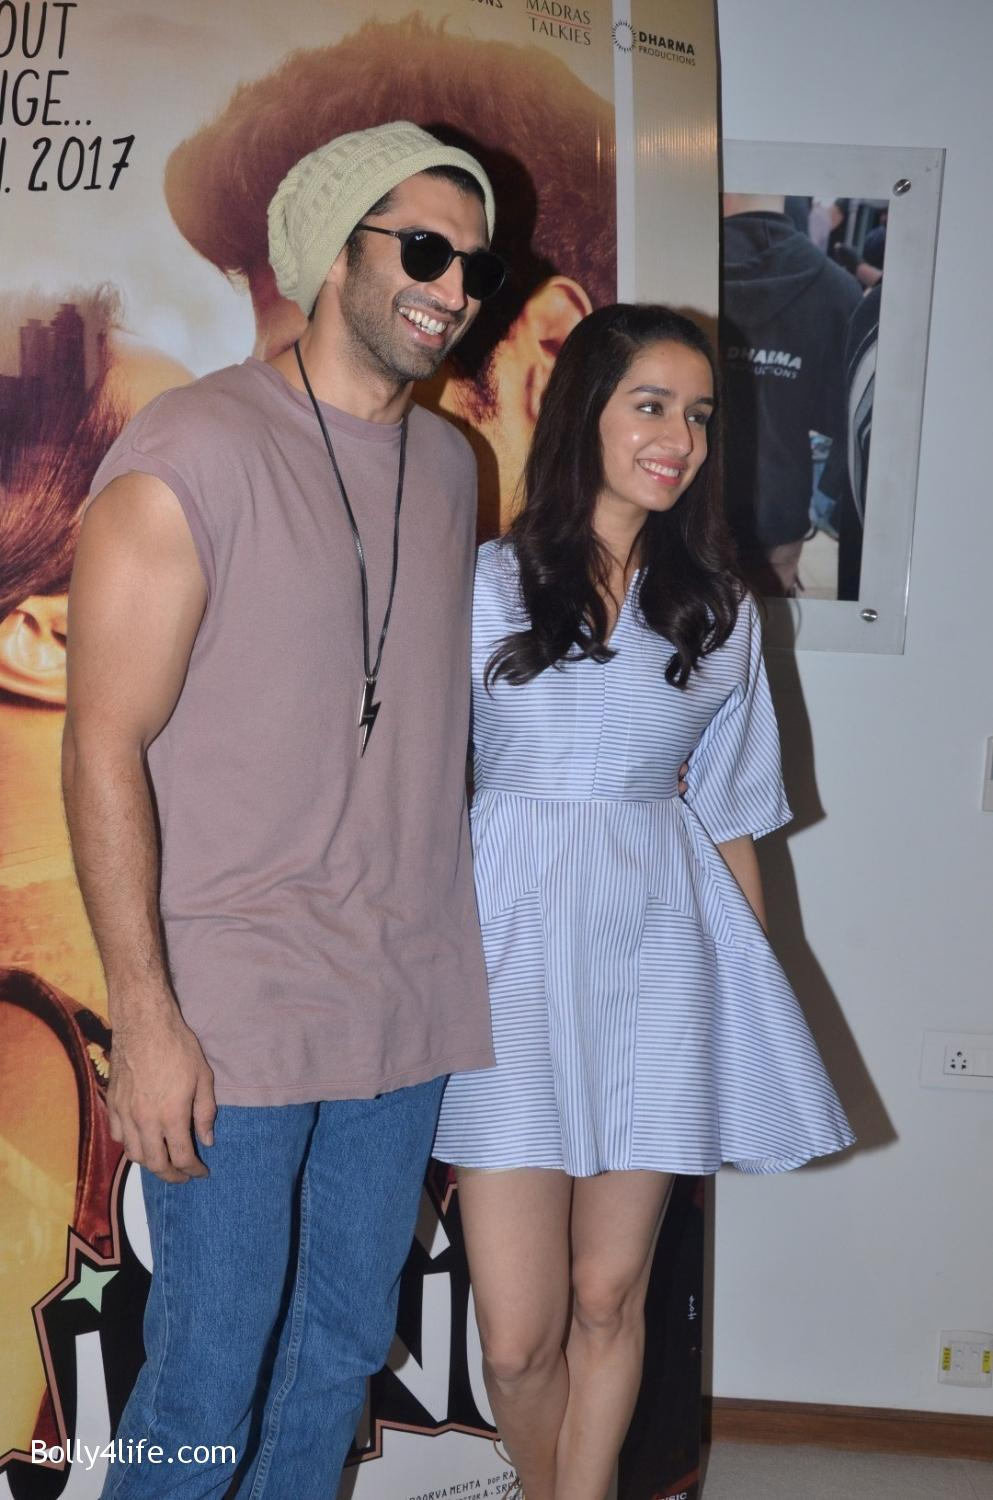 Aditya-Roy-Kapur-and-Shraddha-Kapoor-during-the-media-interaction-for-the-film-Ok-Jaanu-19.jpg